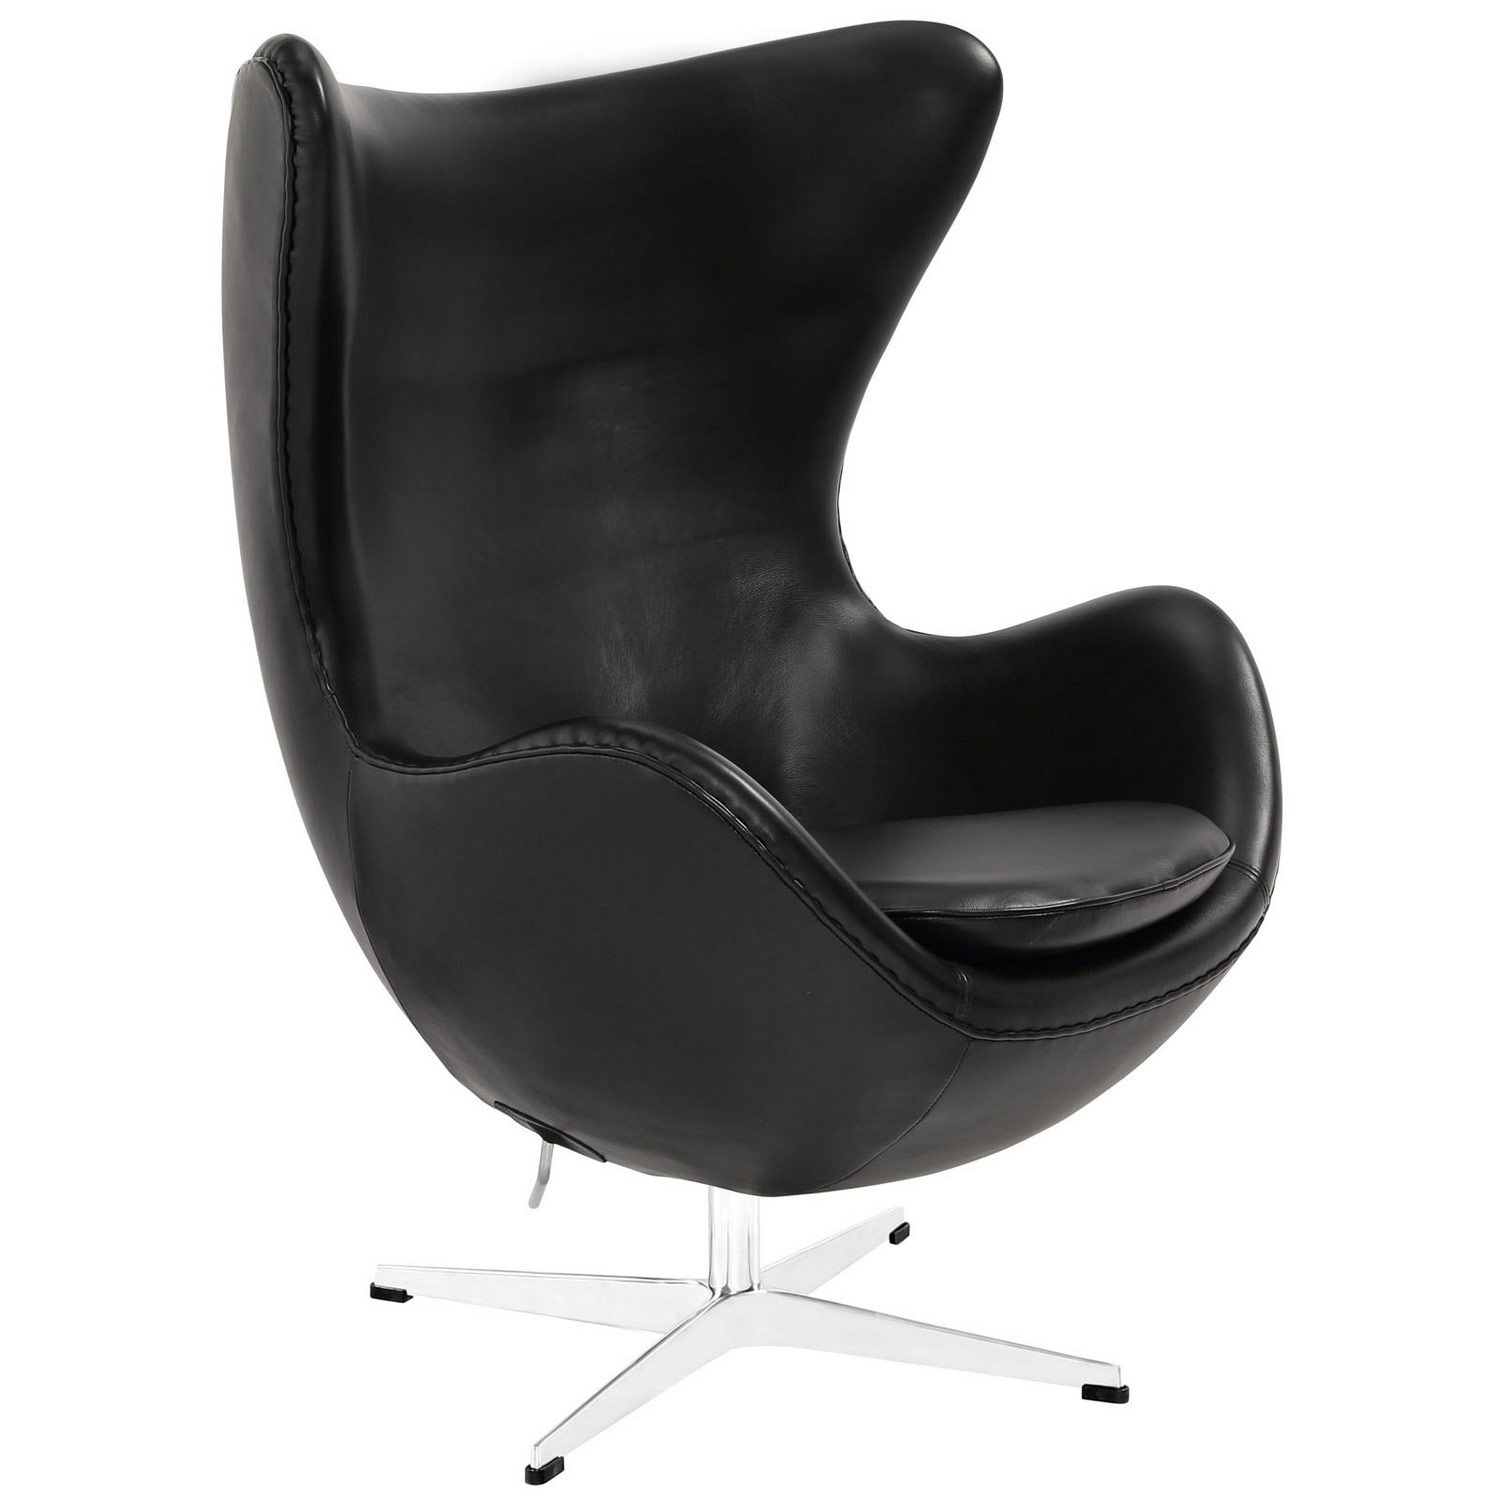 Modway Glove Leather Lounge Chair and Ottoman - Black